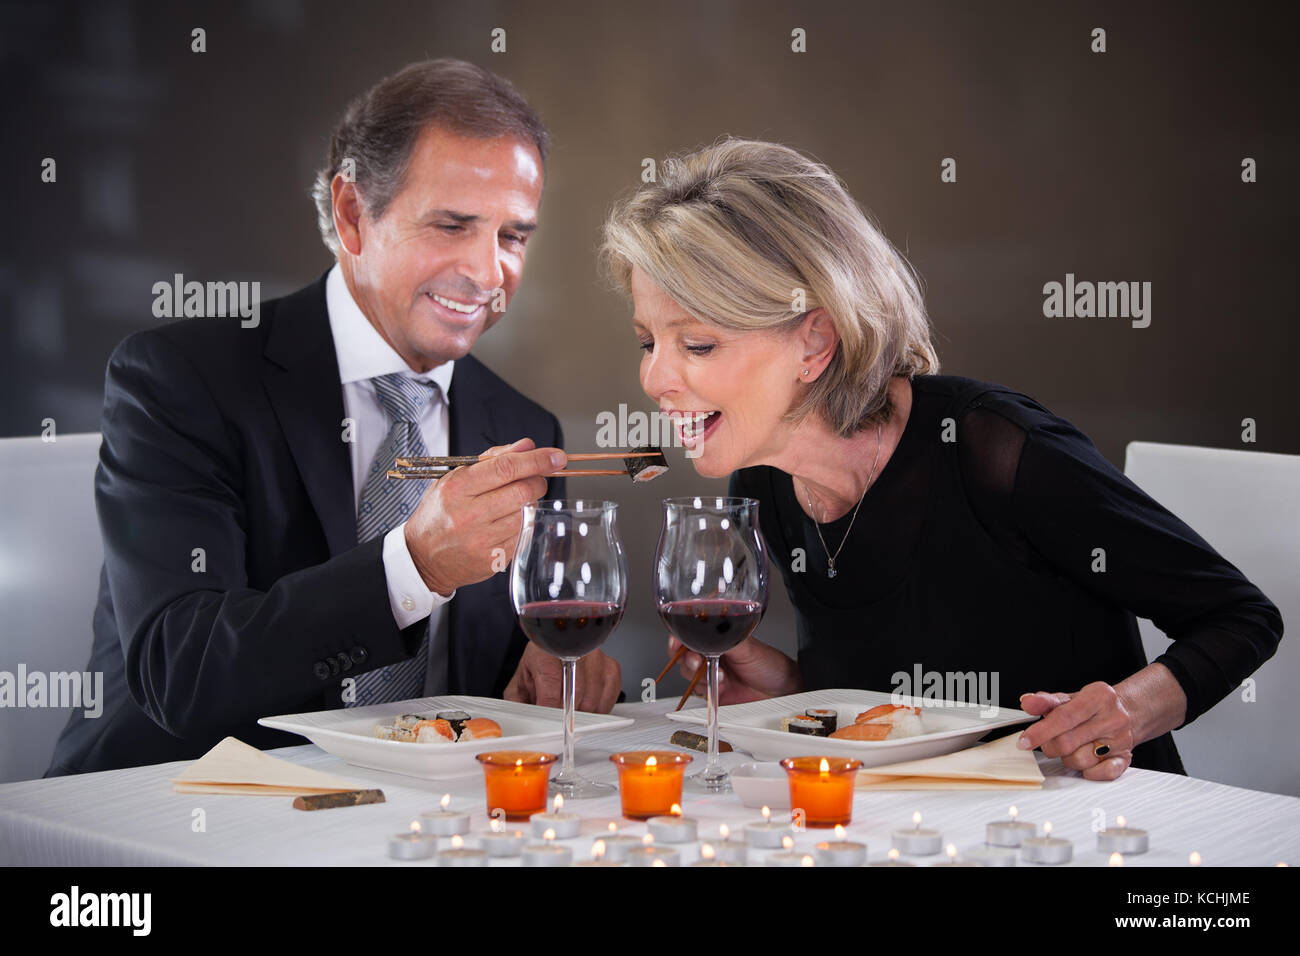 Romantic Mature Couple Having Dinner At Restaurant - Stock Image